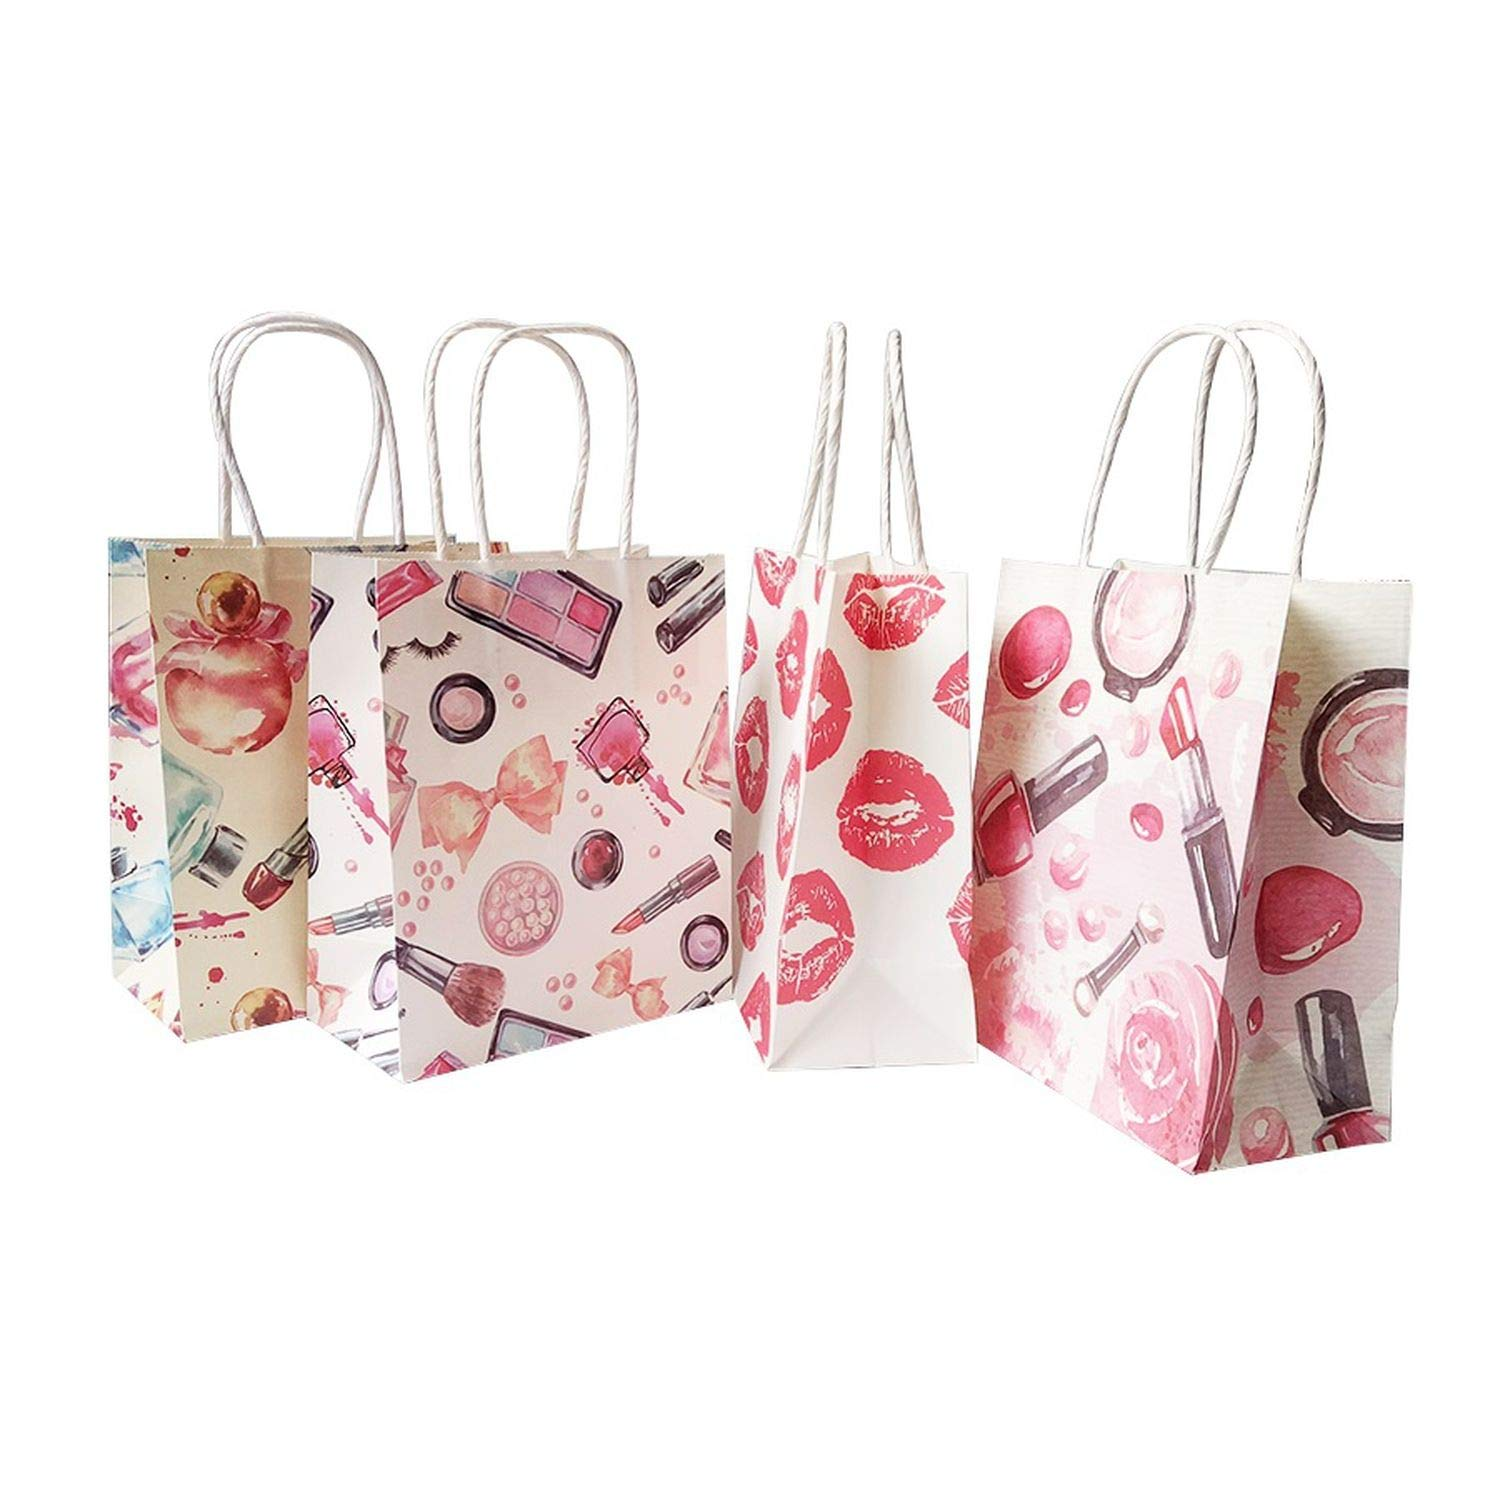 50 Pcs/Lot 15x18 cm Cosmetic Pattern Printing Paper Bags with Handle Gift Bags Party Favor Wedding Packaging Storage Bags,Perfume by JIA-WALK (Image #6)